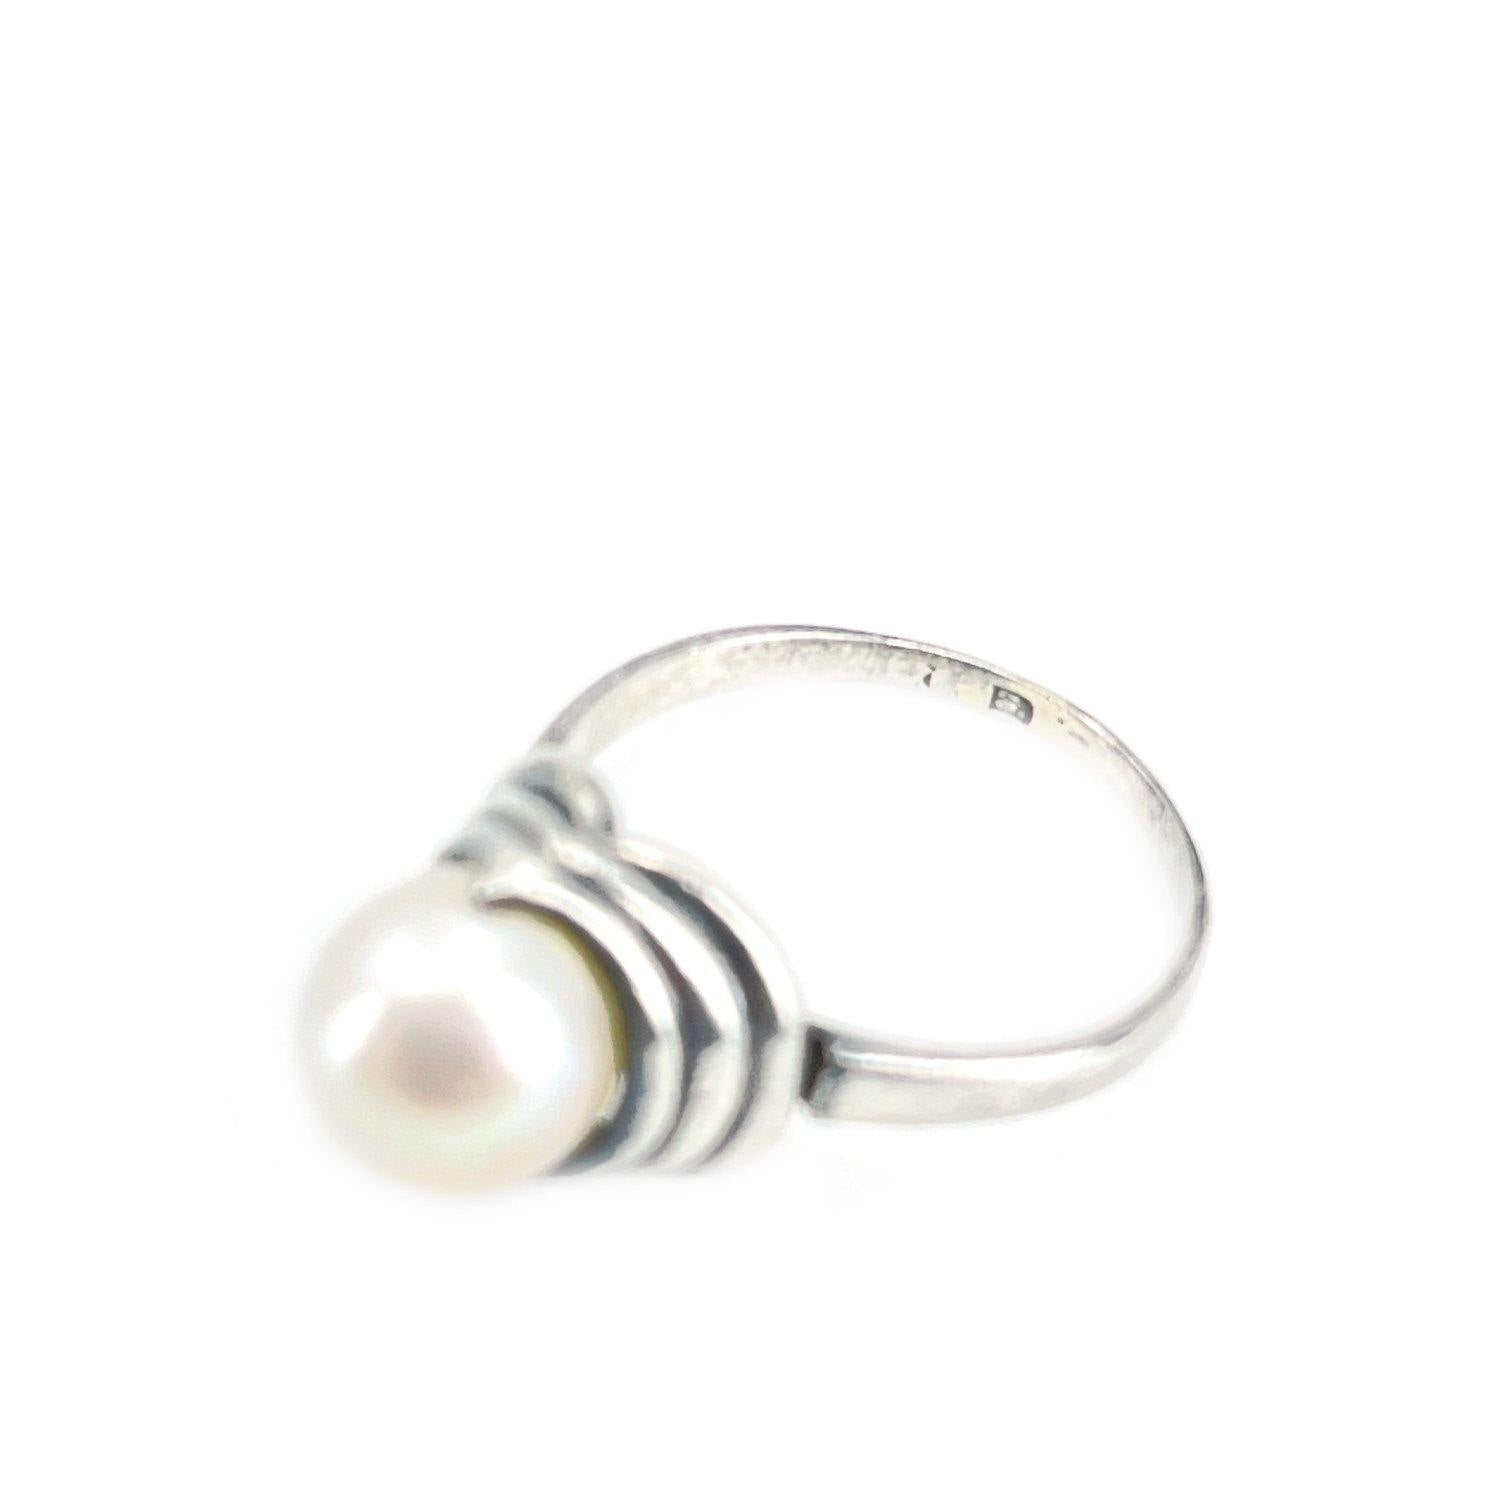 Art Deco Japanese Saltwater Akoya Cultured Pearl Ring- Sterling Silver Sz 5